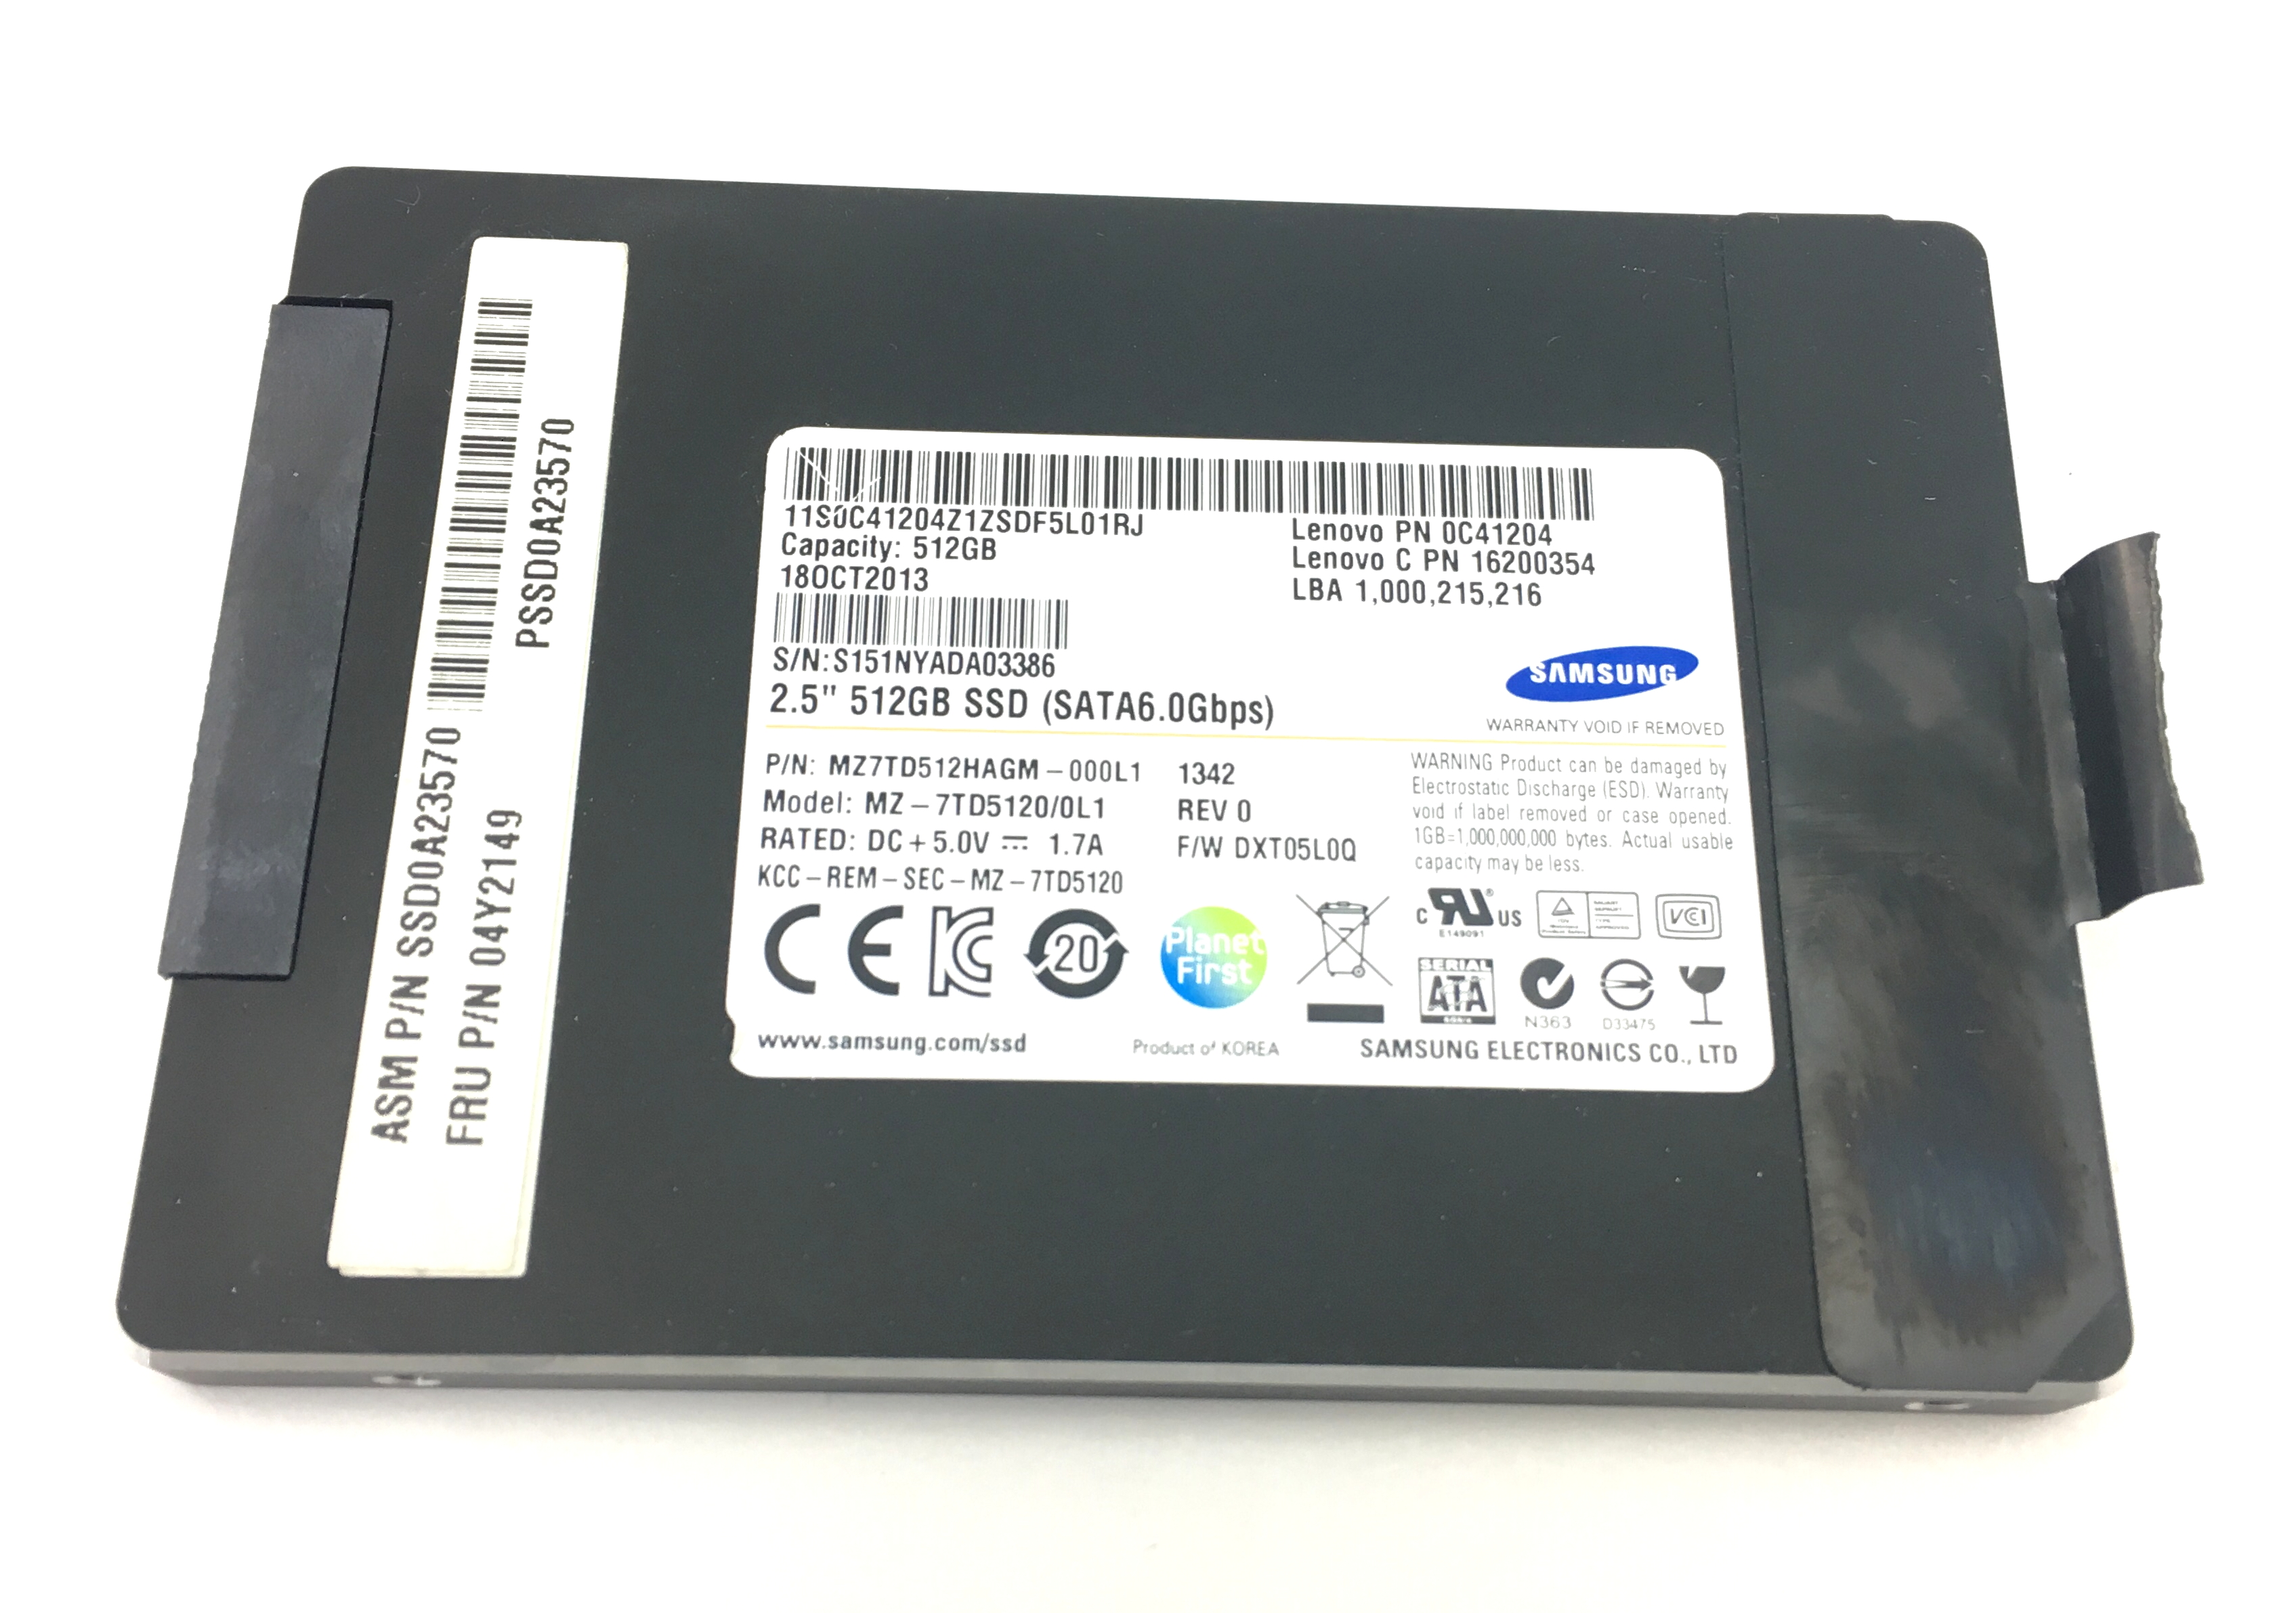 Lenovo 512Gb 6Gbps SATA 2.5'' SSD Solid State Drive (04Y2149)